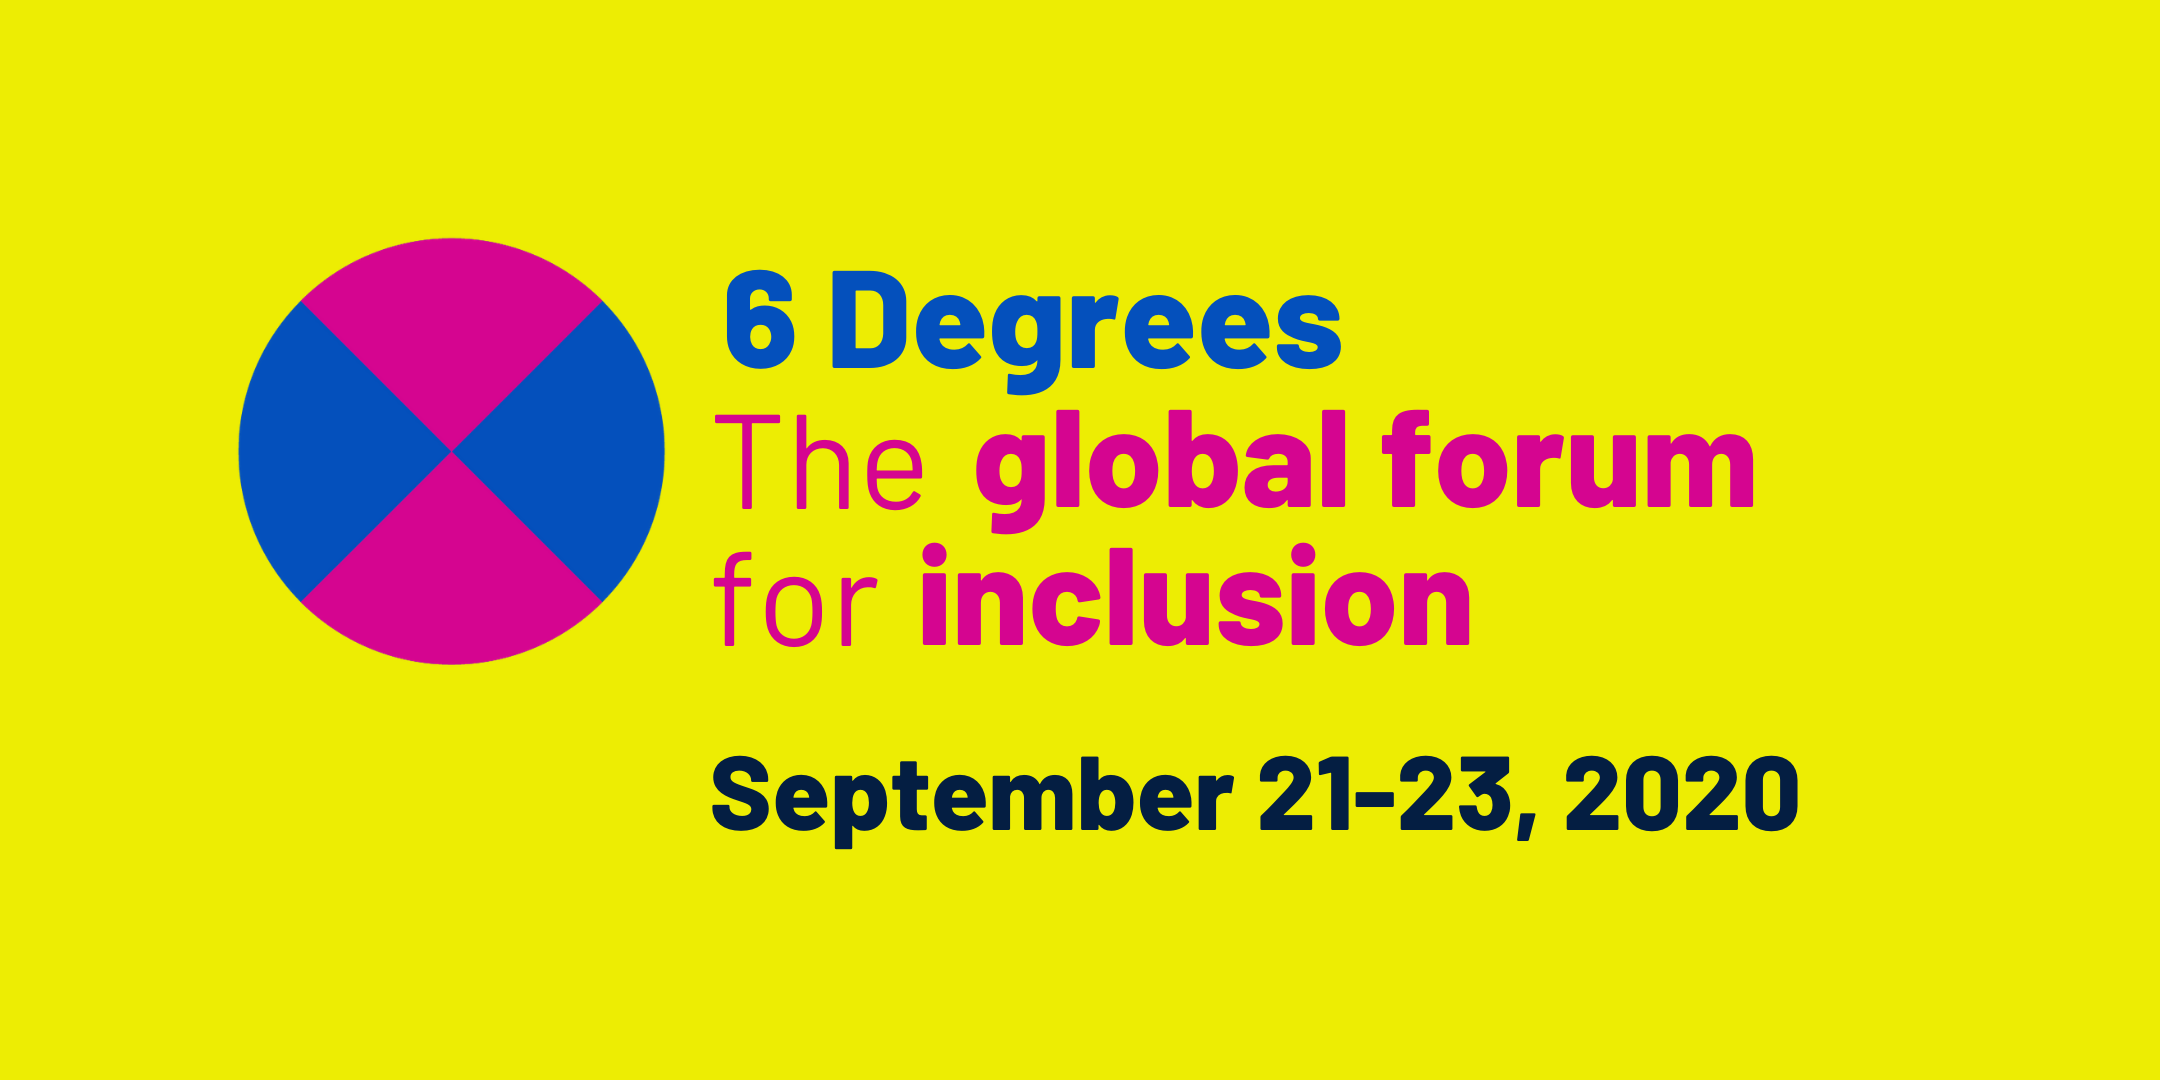 6 Degrees: the global forum for inclusion